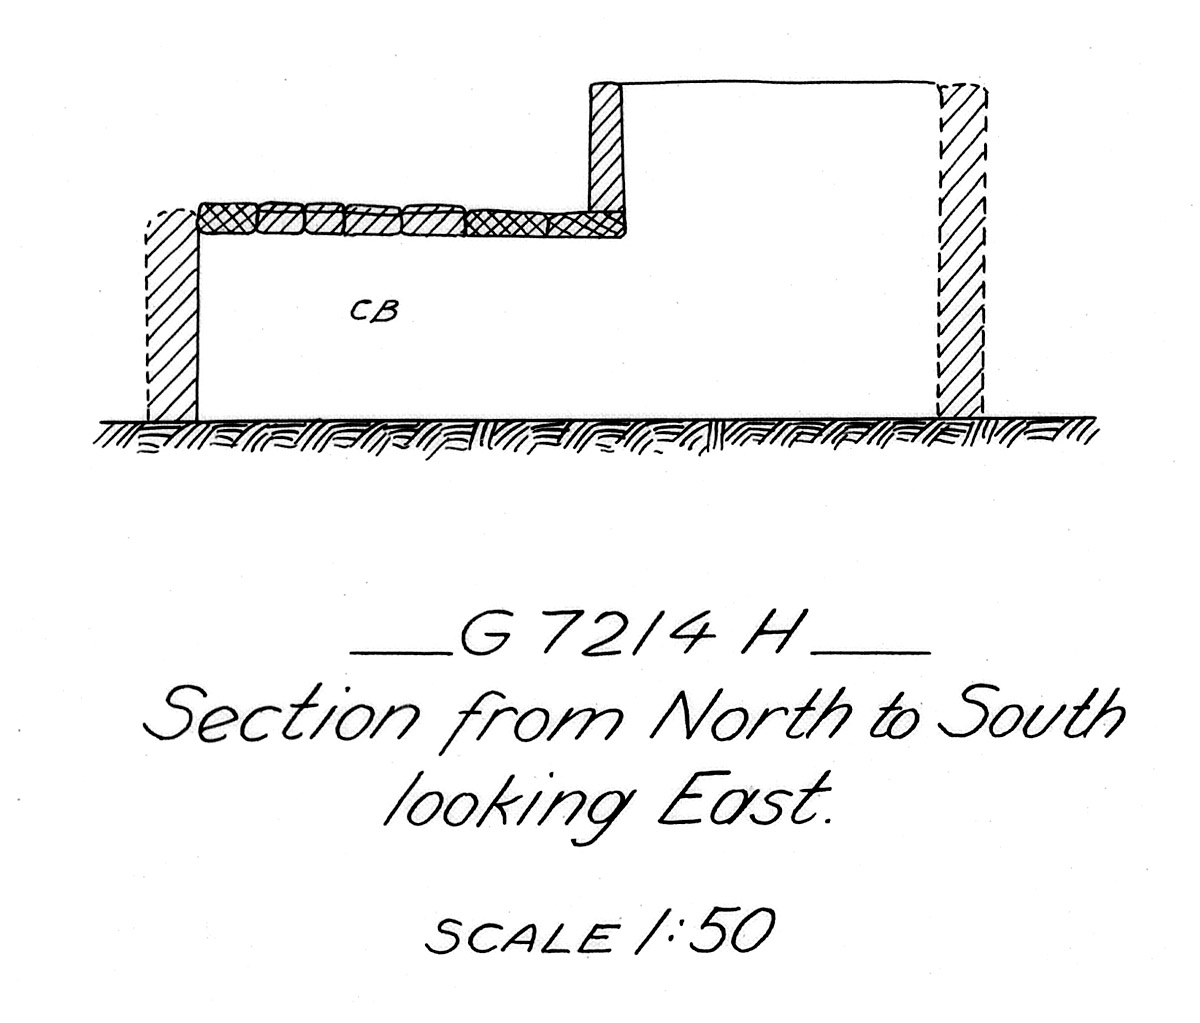 Maps and plans: G 7214, Shaft H